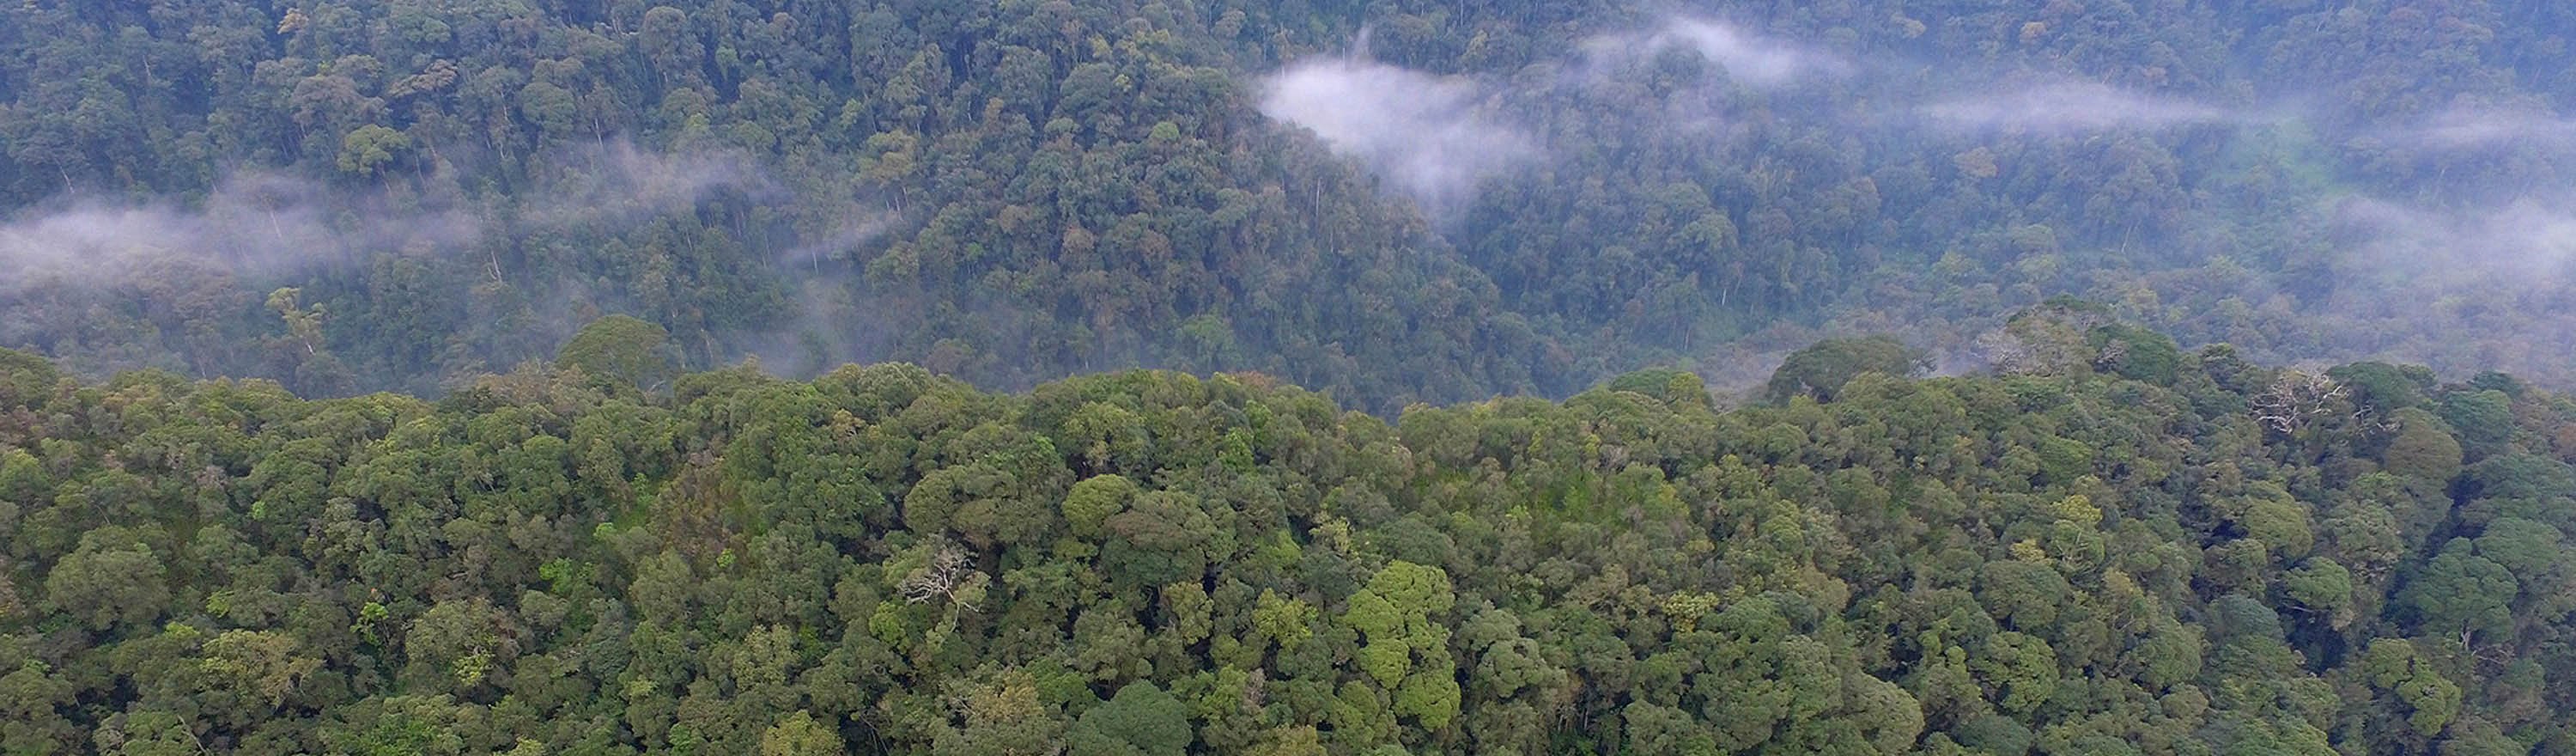 Nyungwe Forest National Park | Kambogo